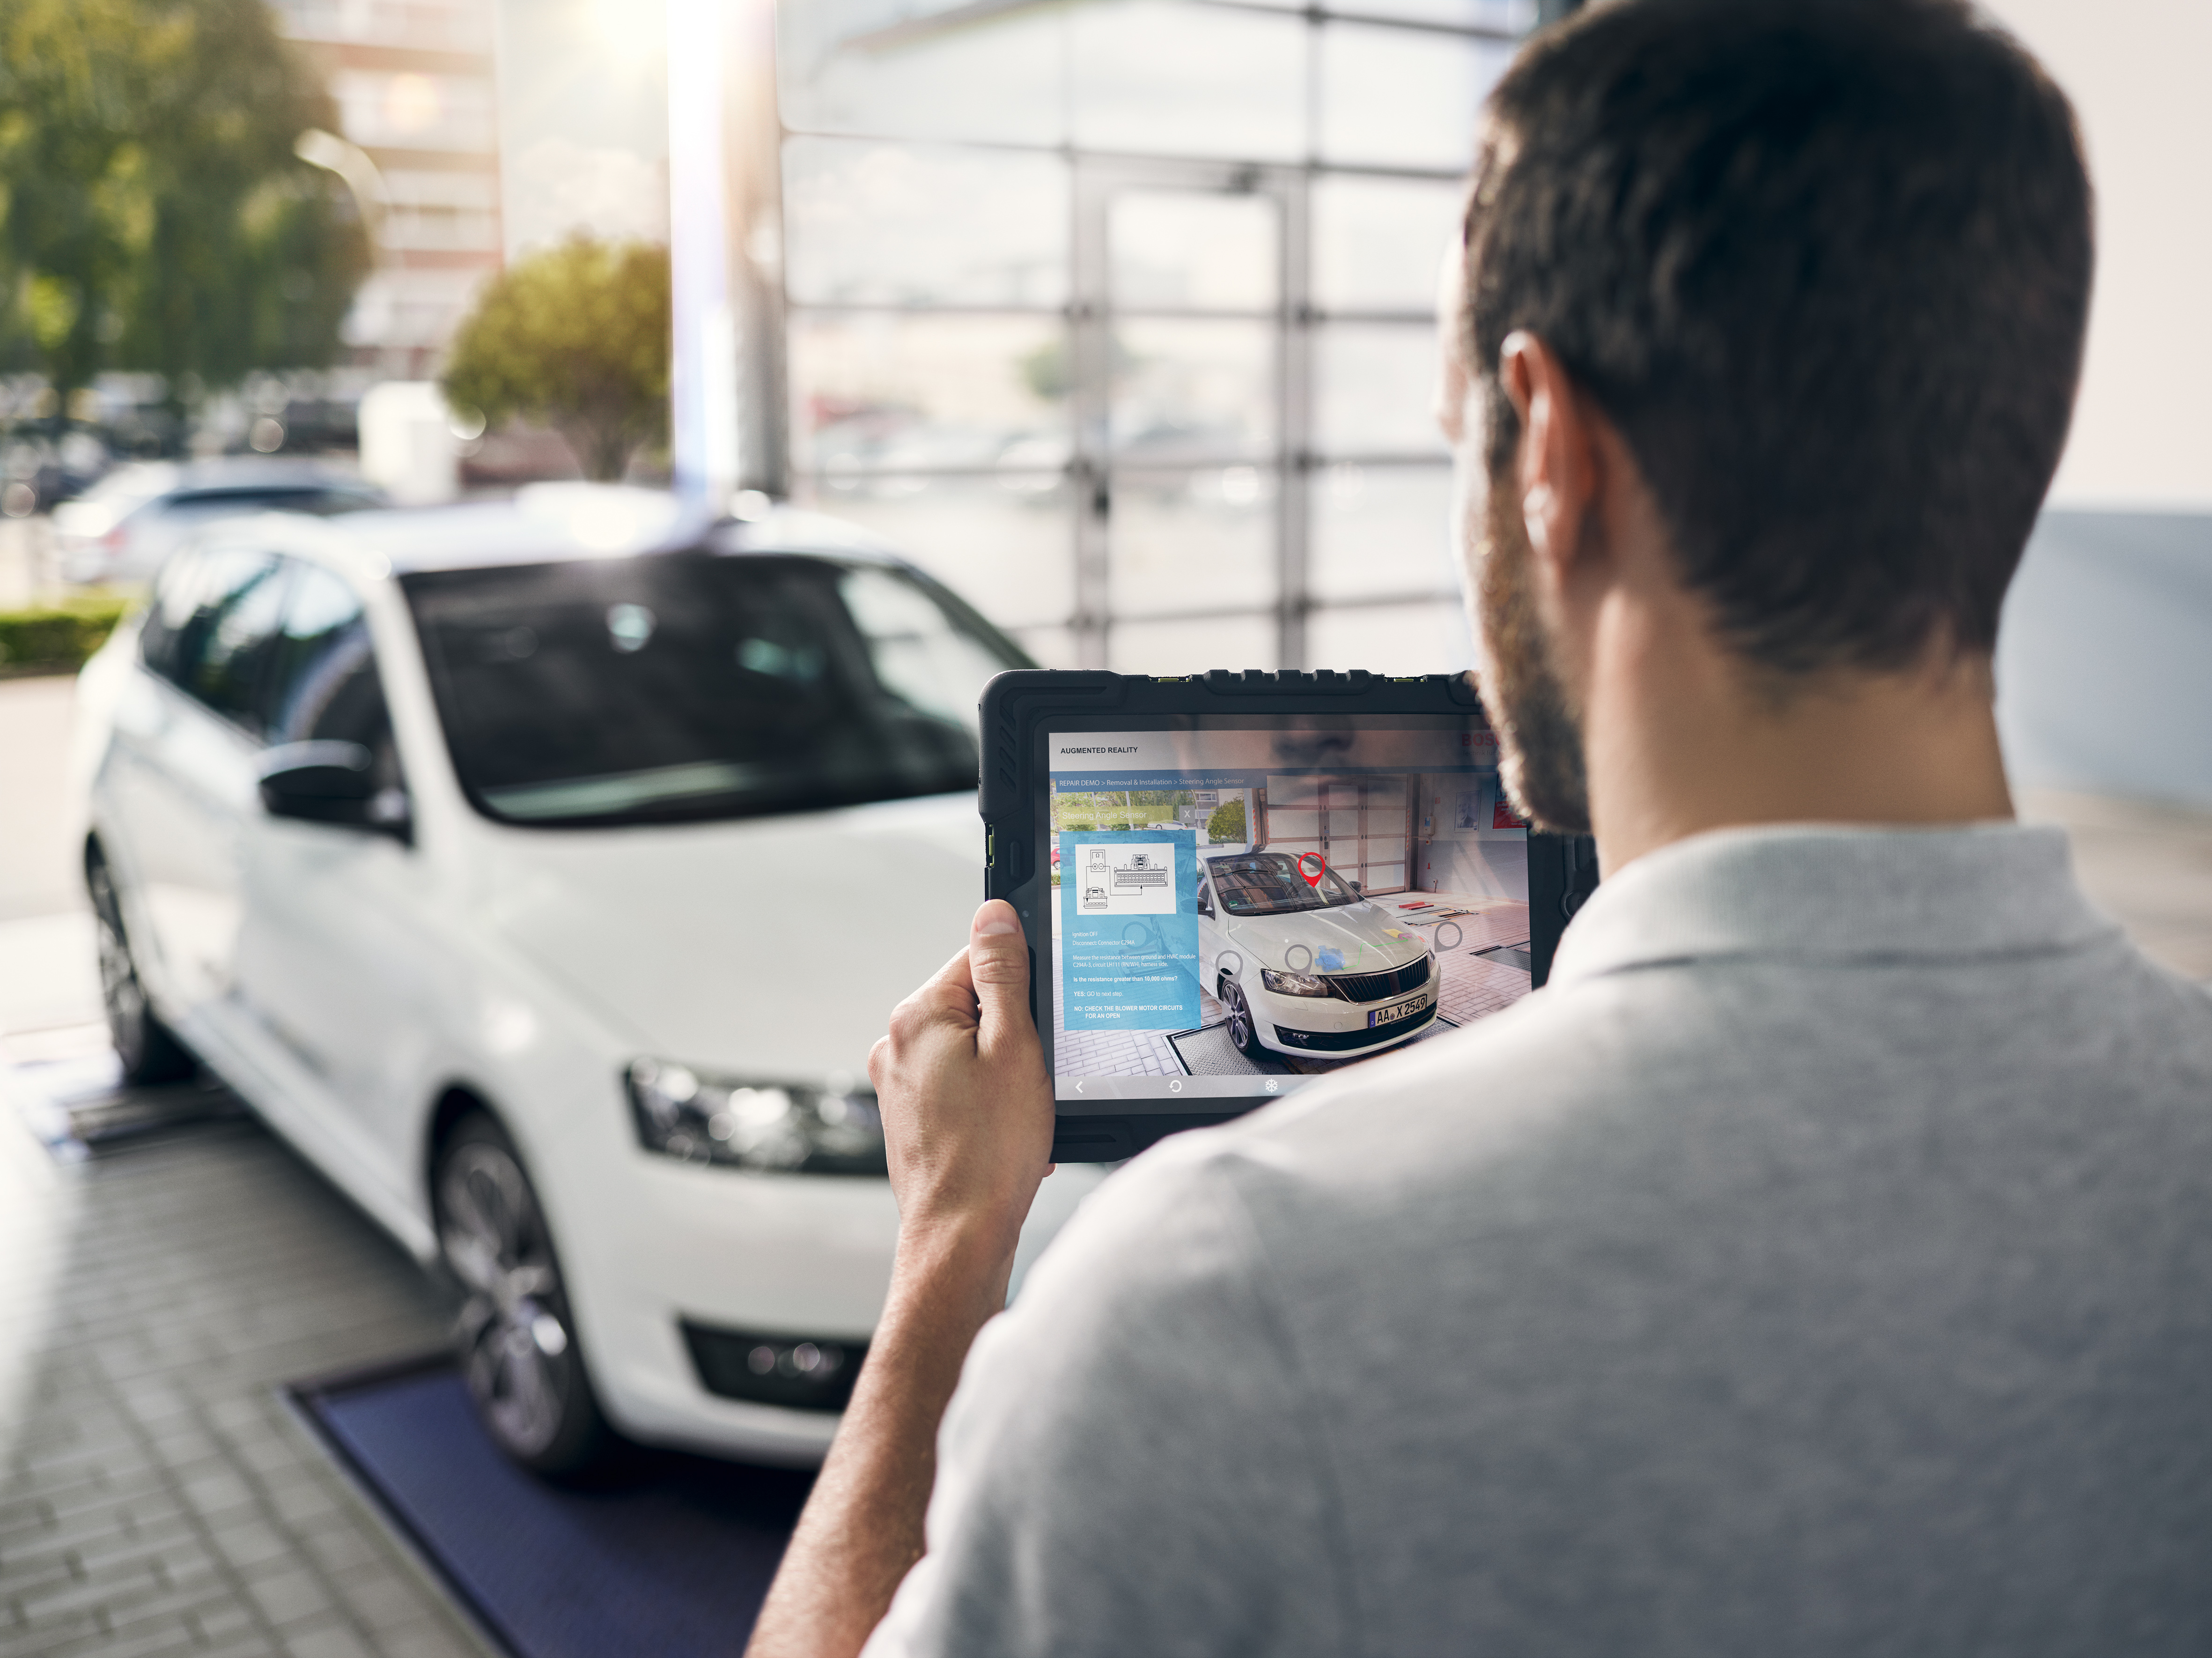 Augmented Reality Applications Allow New Working Methods For Modern